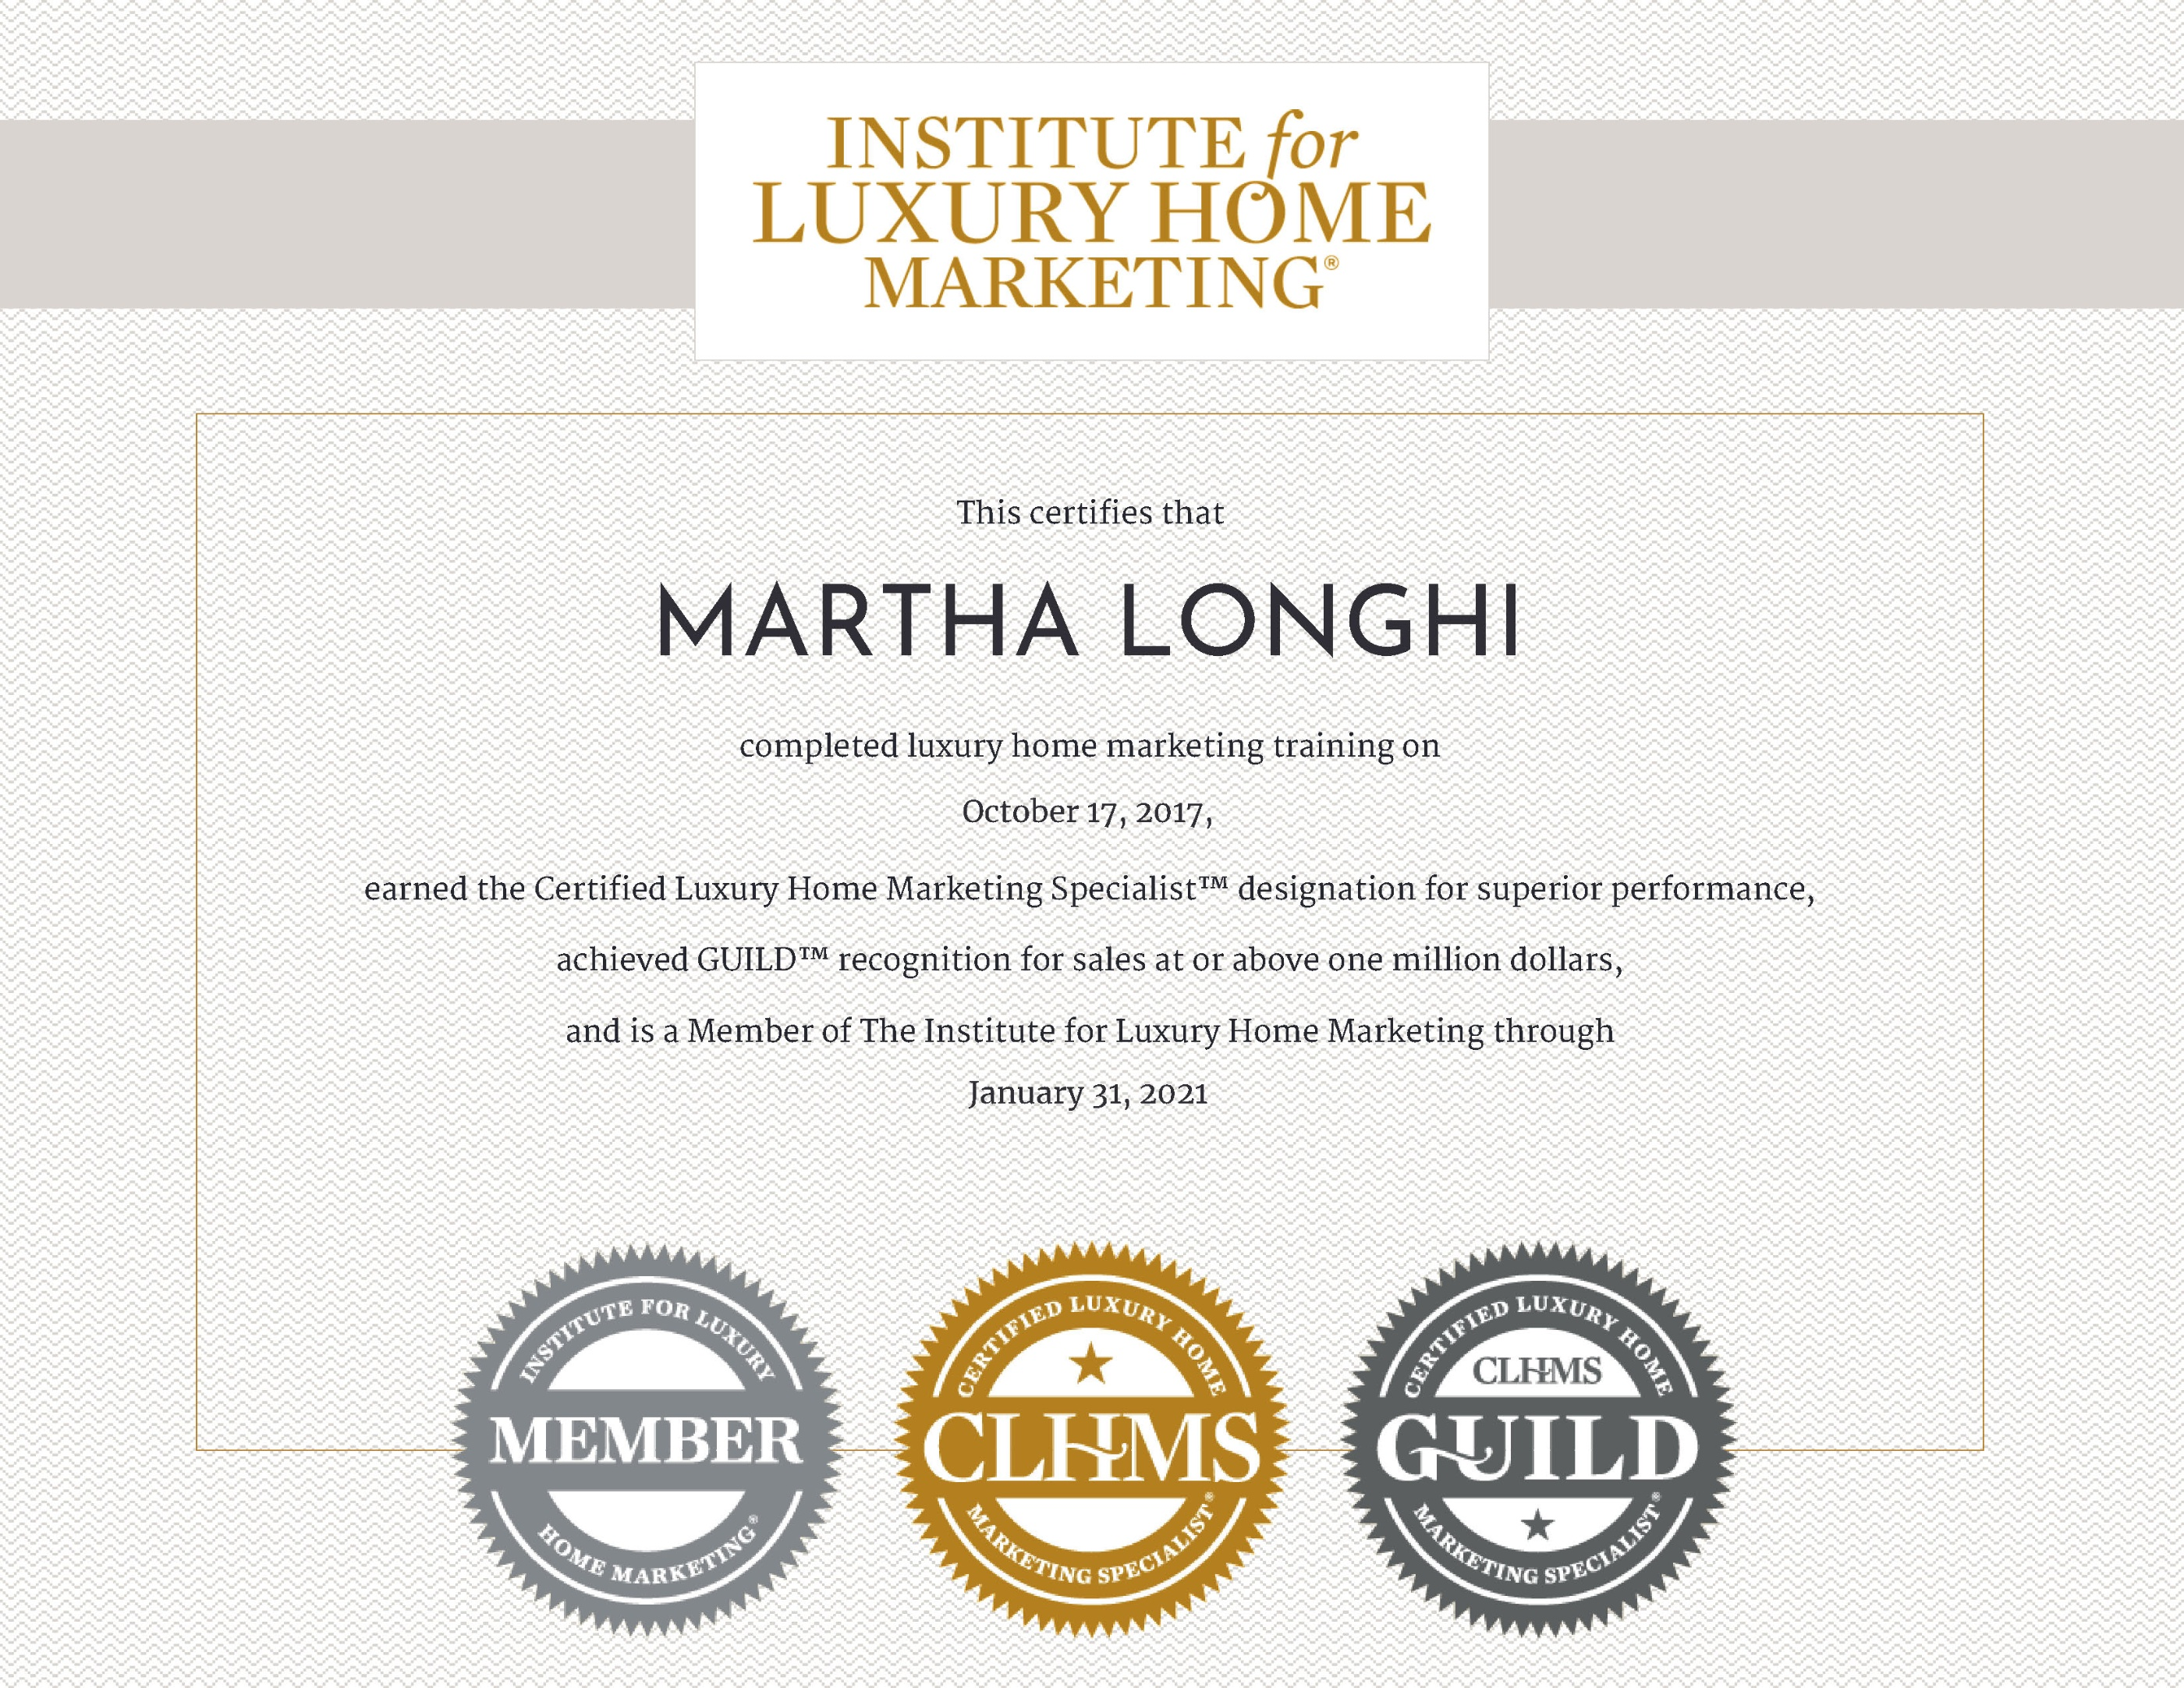 martha longhi is a certified luxury home marketing specialist